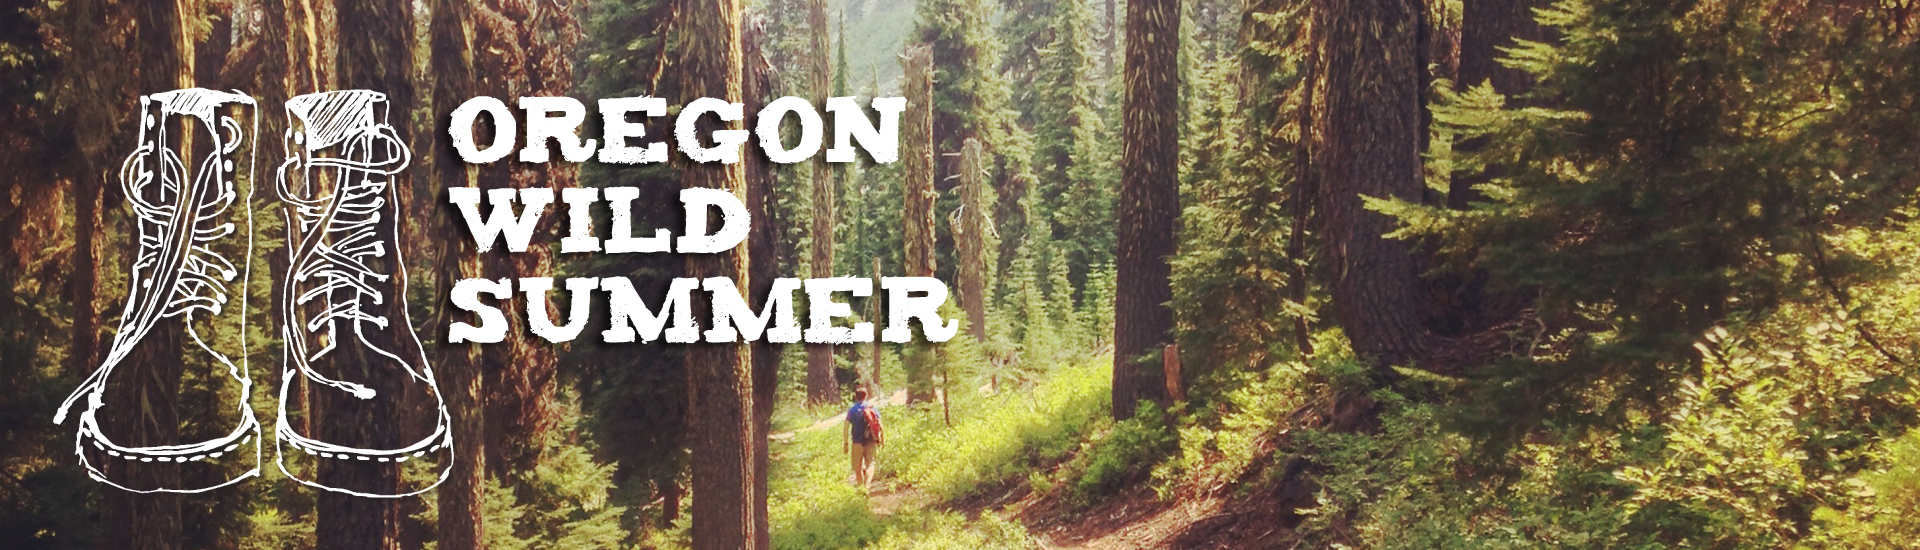 Oregon Wild Summer (Sky Lakes Wilderness by Marielle Cowdin)